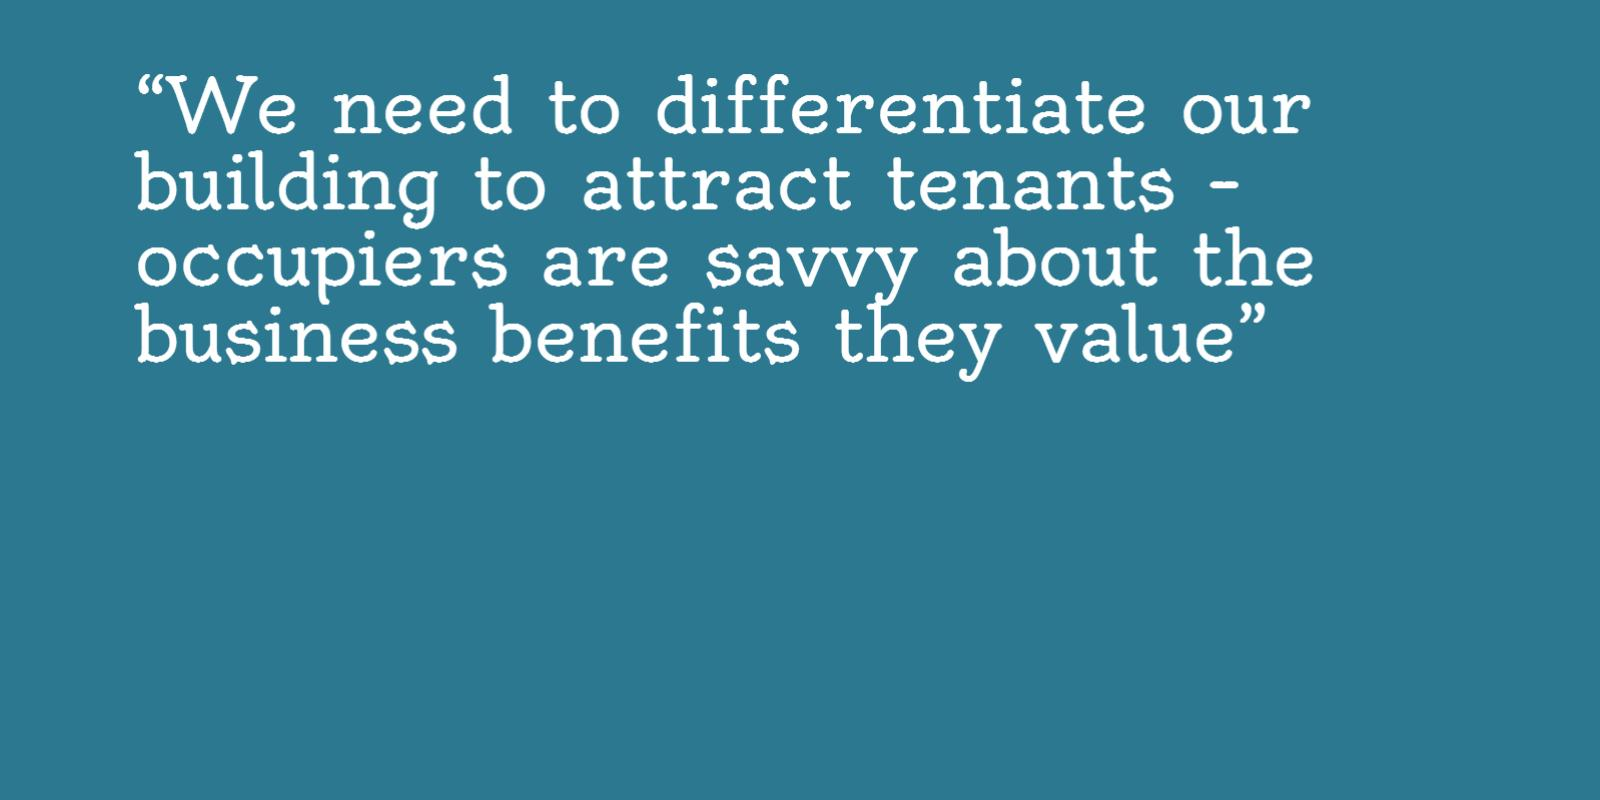 Image of the need to differentiate our building to attract tenants. Occupiers are savvy about the business benefits they value